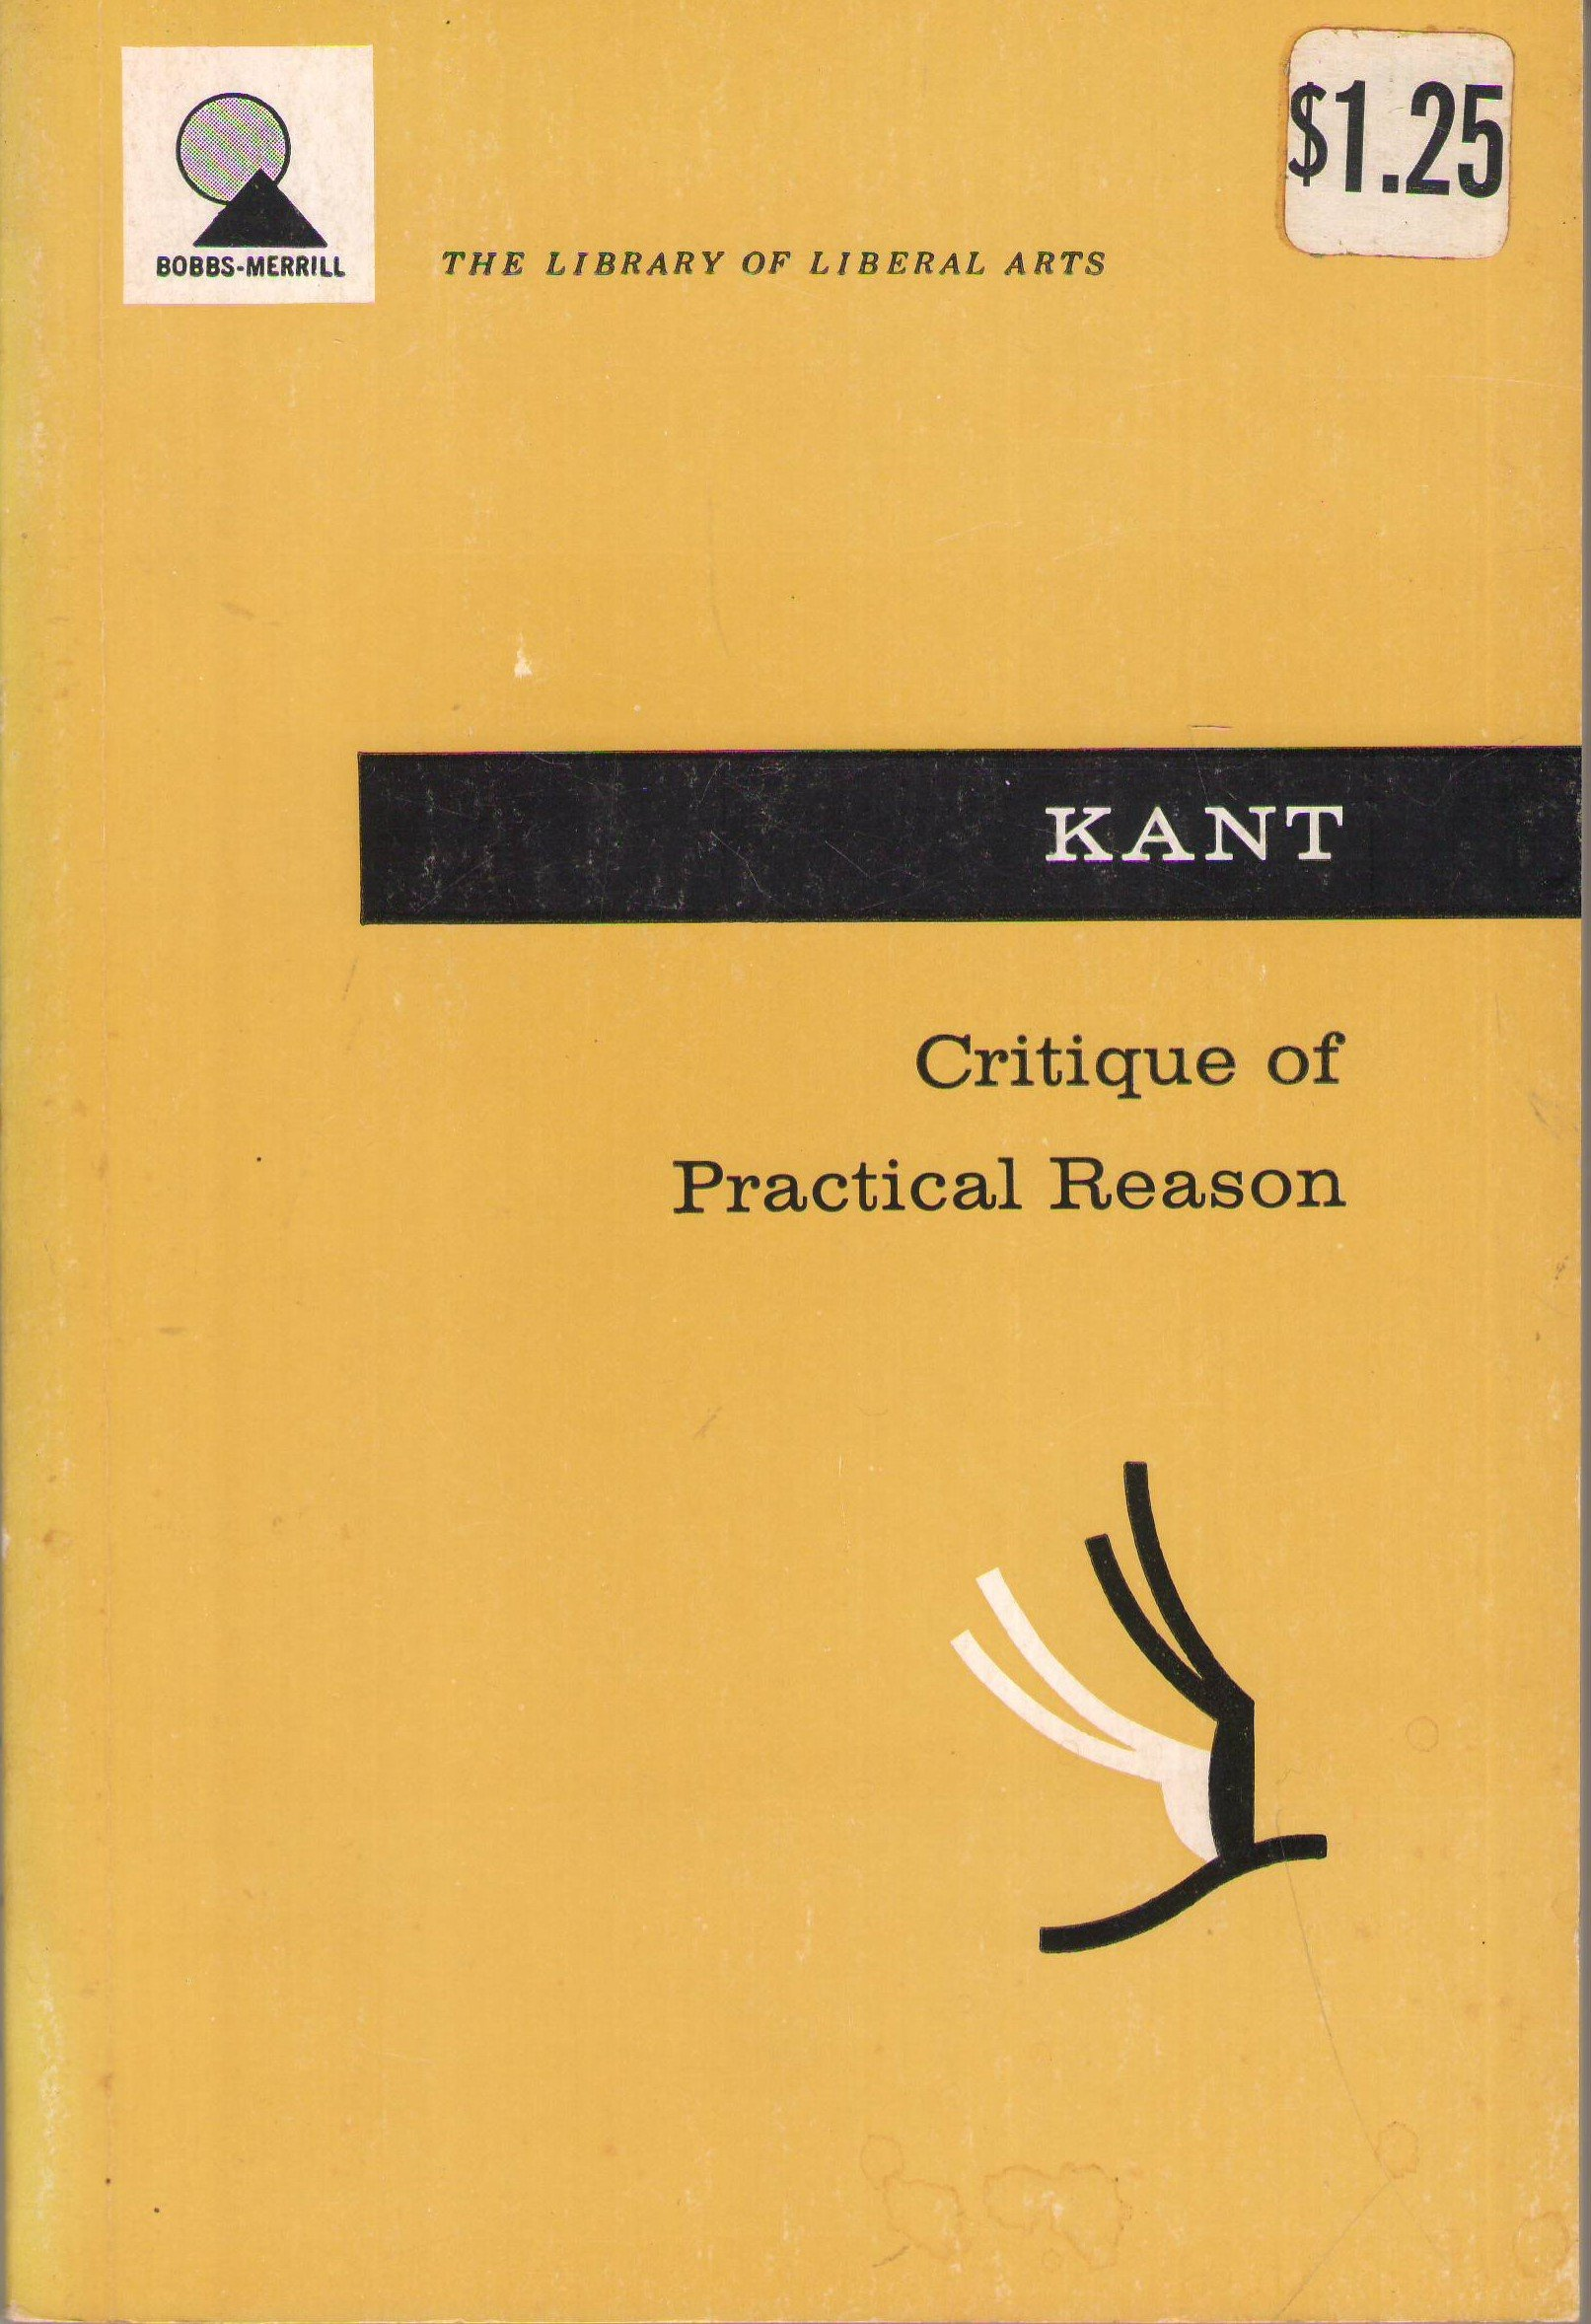 Critique of practical reason; (The Library of liberal arts, no. 52), Kant, Immanuel